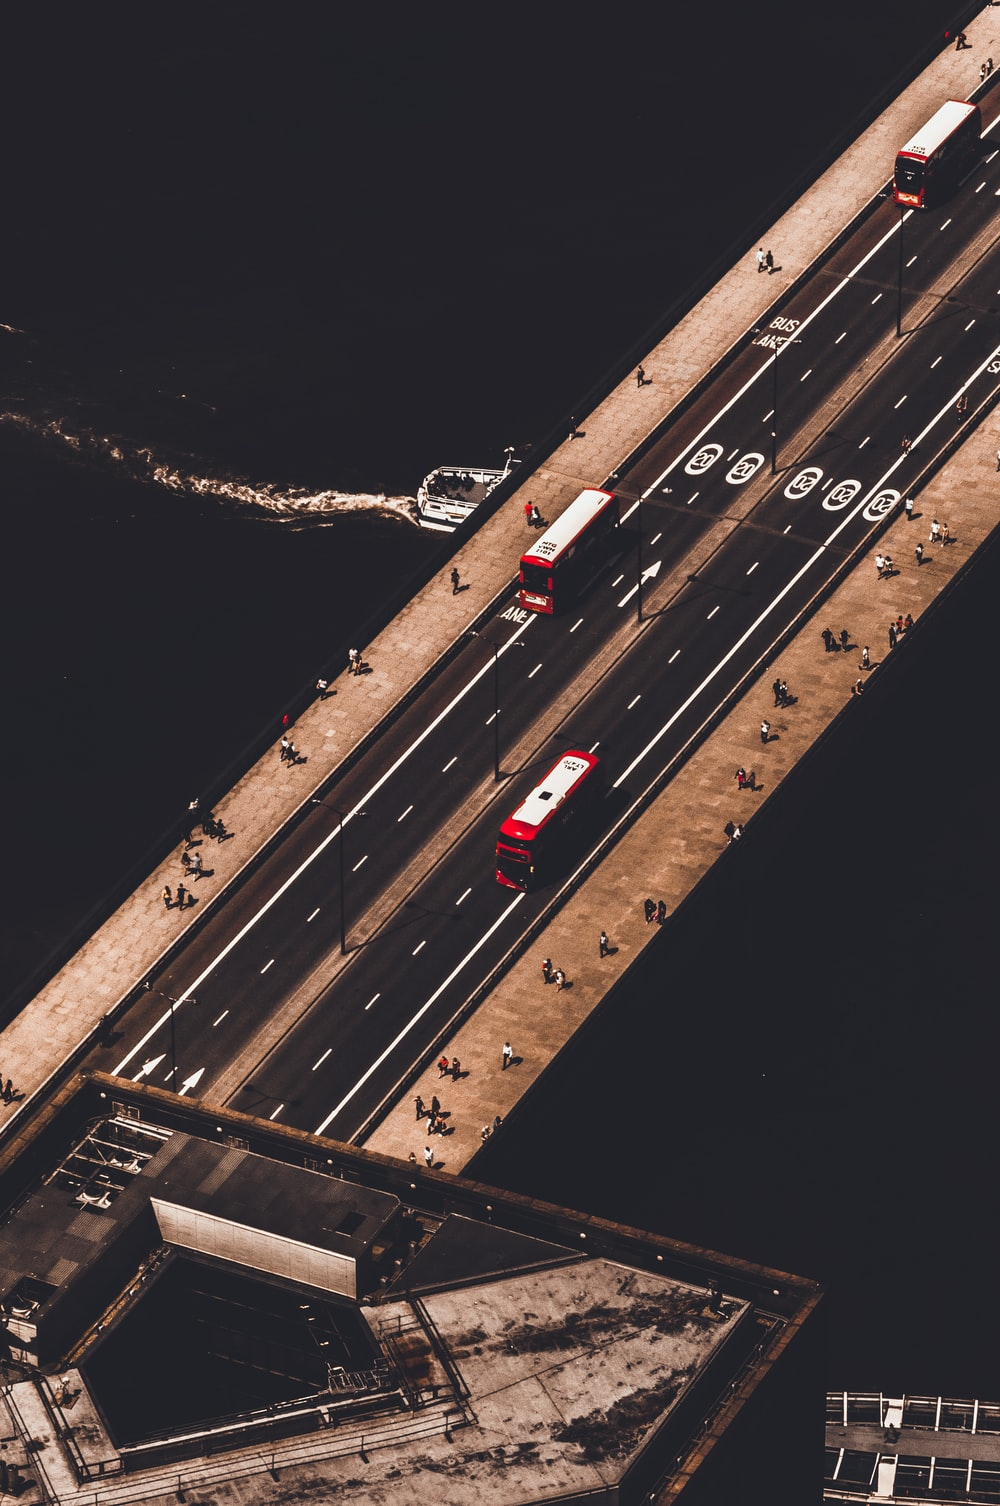 aerial photography of vehicle on road above body of water